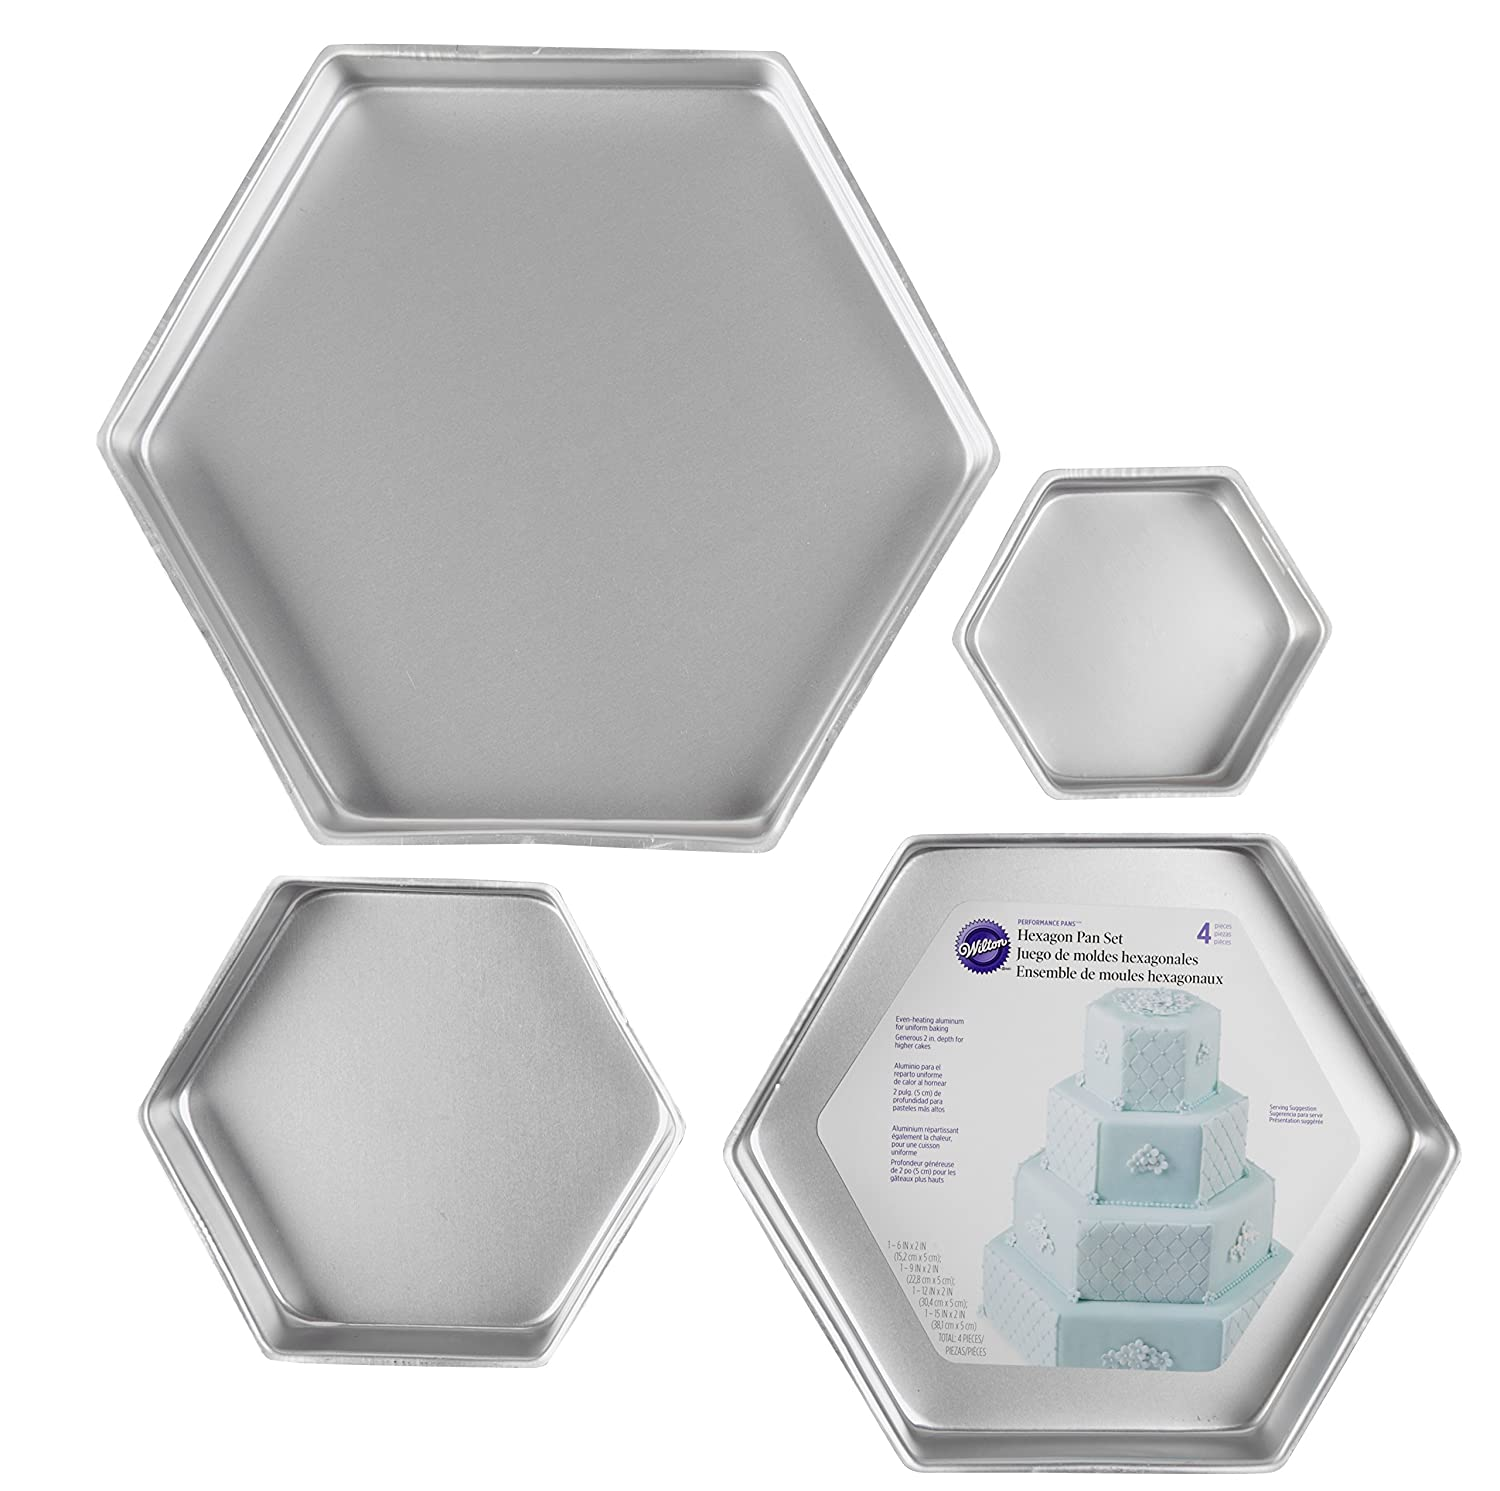 Wilton Performance Pans Hexagon Cake Pan Set, 4-Piece 2105-3572